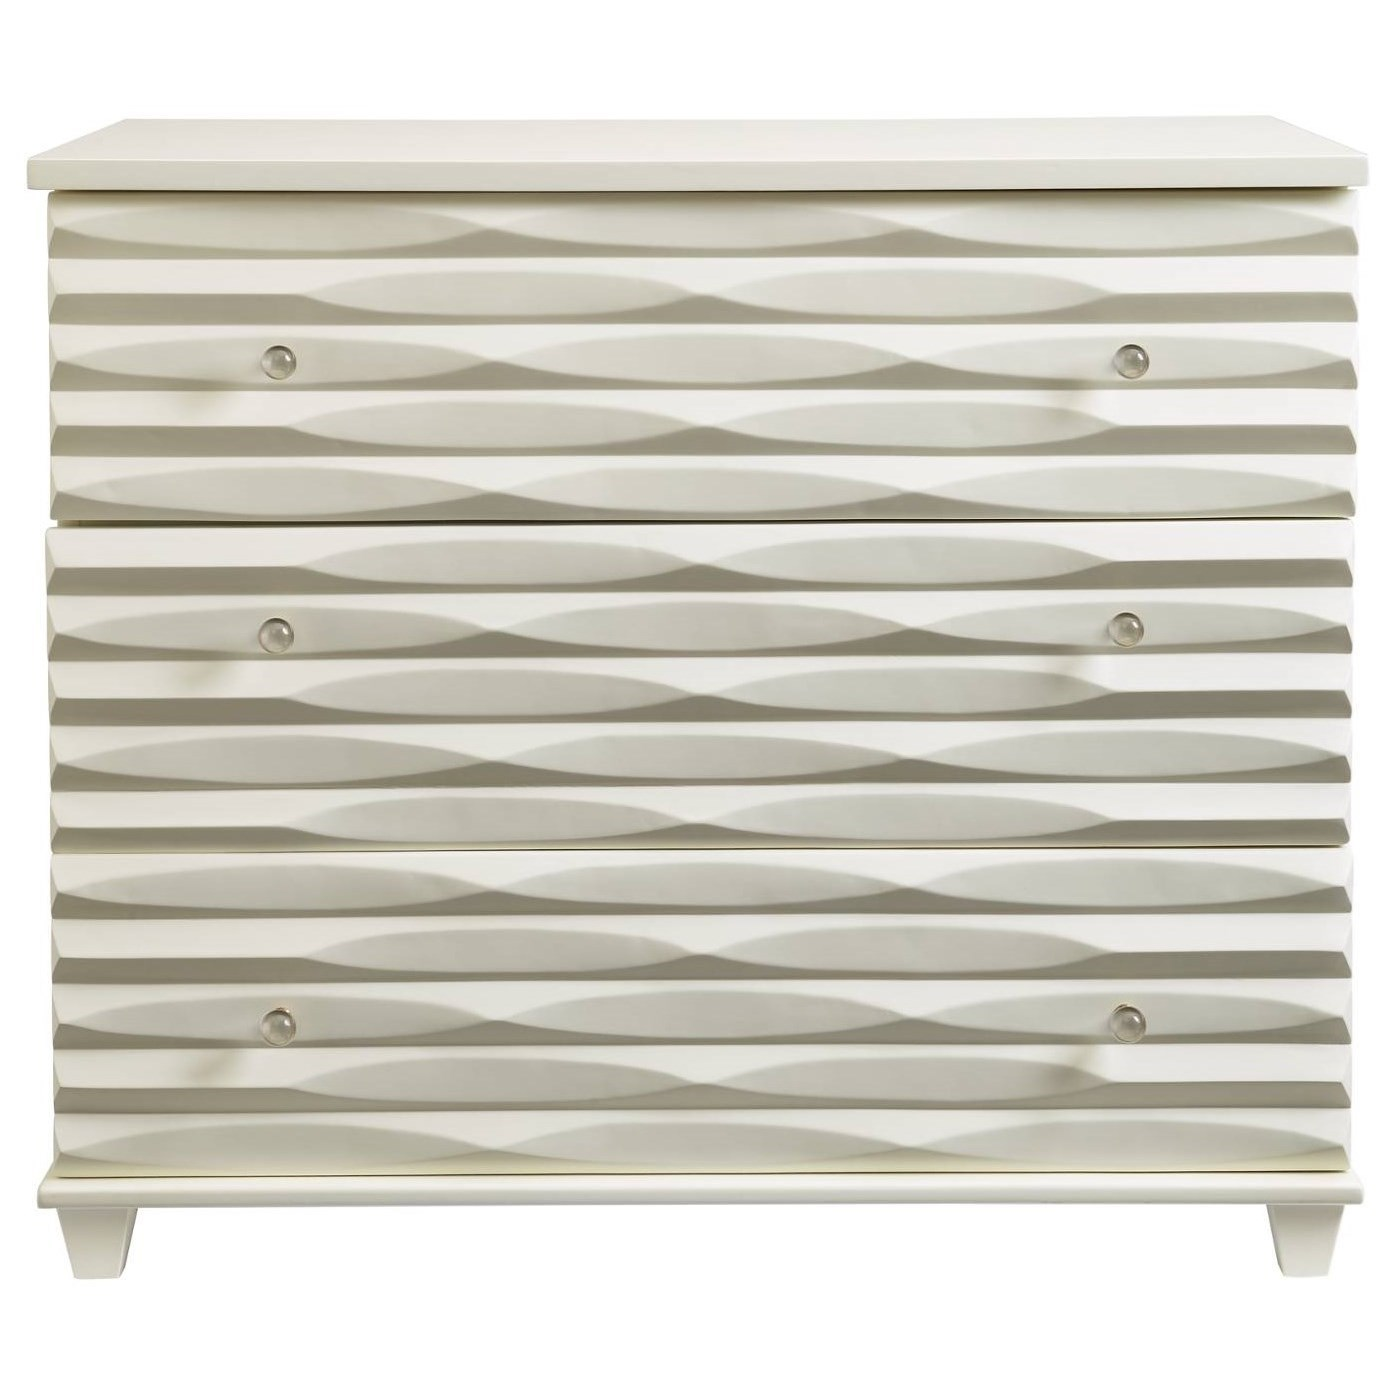 Stanley Furniture Coastal Living Oasis Tides Single Dresser - Item Number: 527-23-02